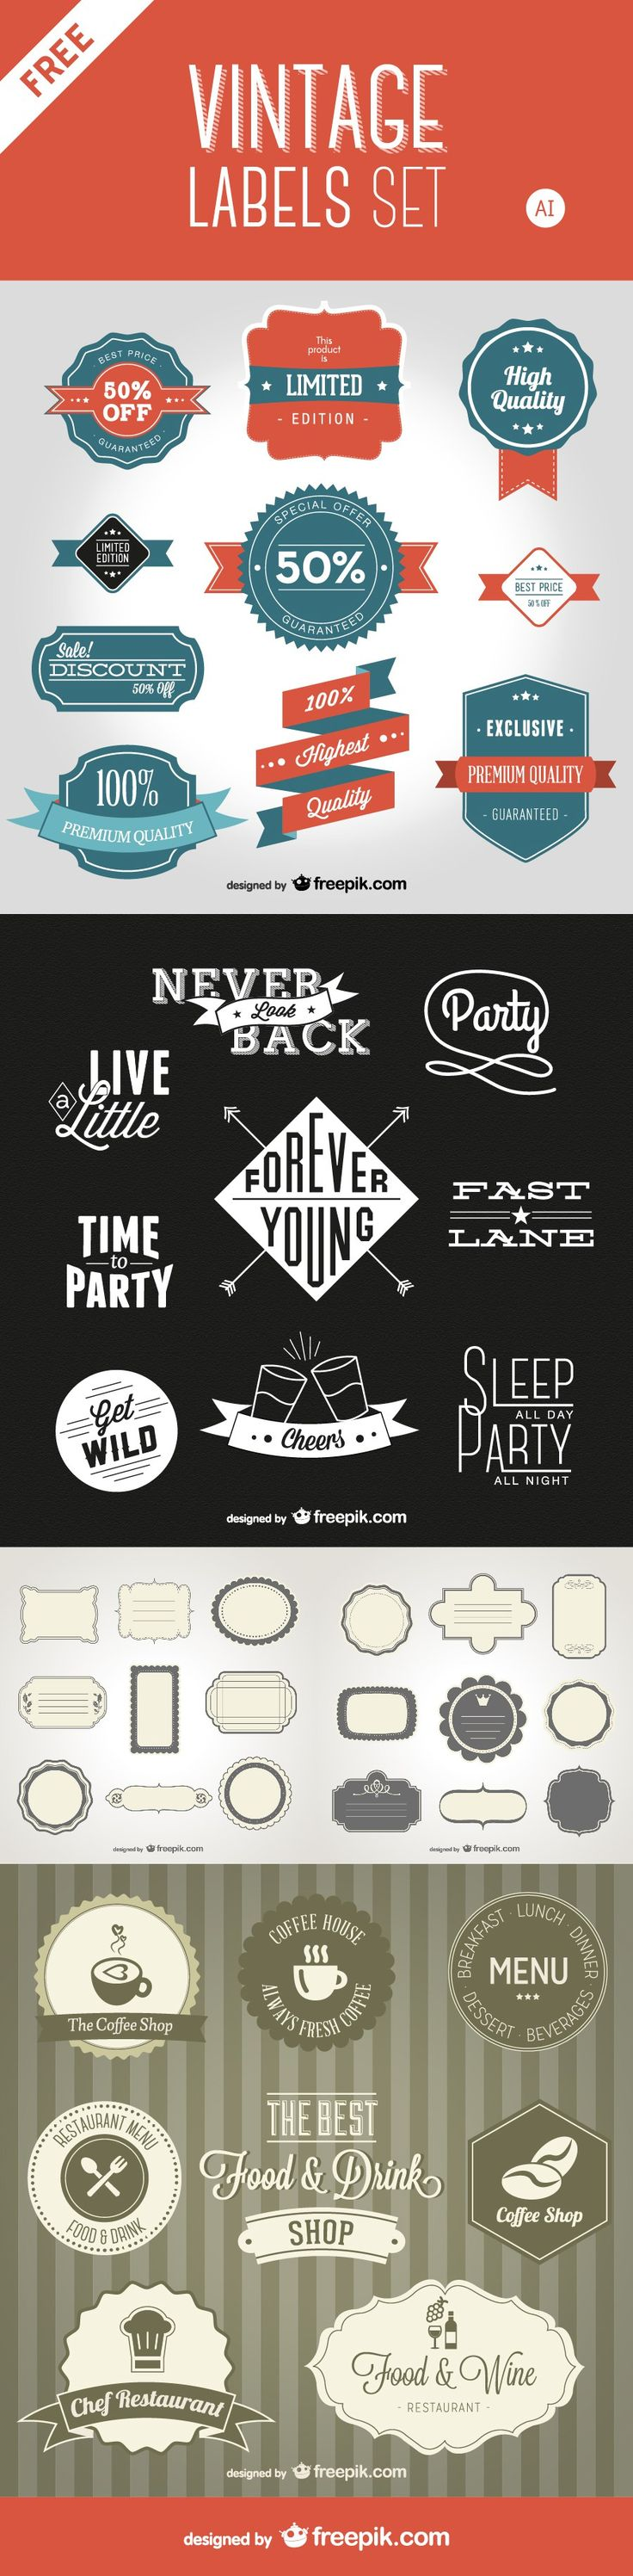 This set includes a variety of well designed retro badges, ribbons, labels and stickers in AI format. - posted under Freebies tagged with: AI, Badge, Free, Graphic Design, Label, Resource, Retro, Ribbon, Sticker, Vector, Vintage by Fribly Editorial